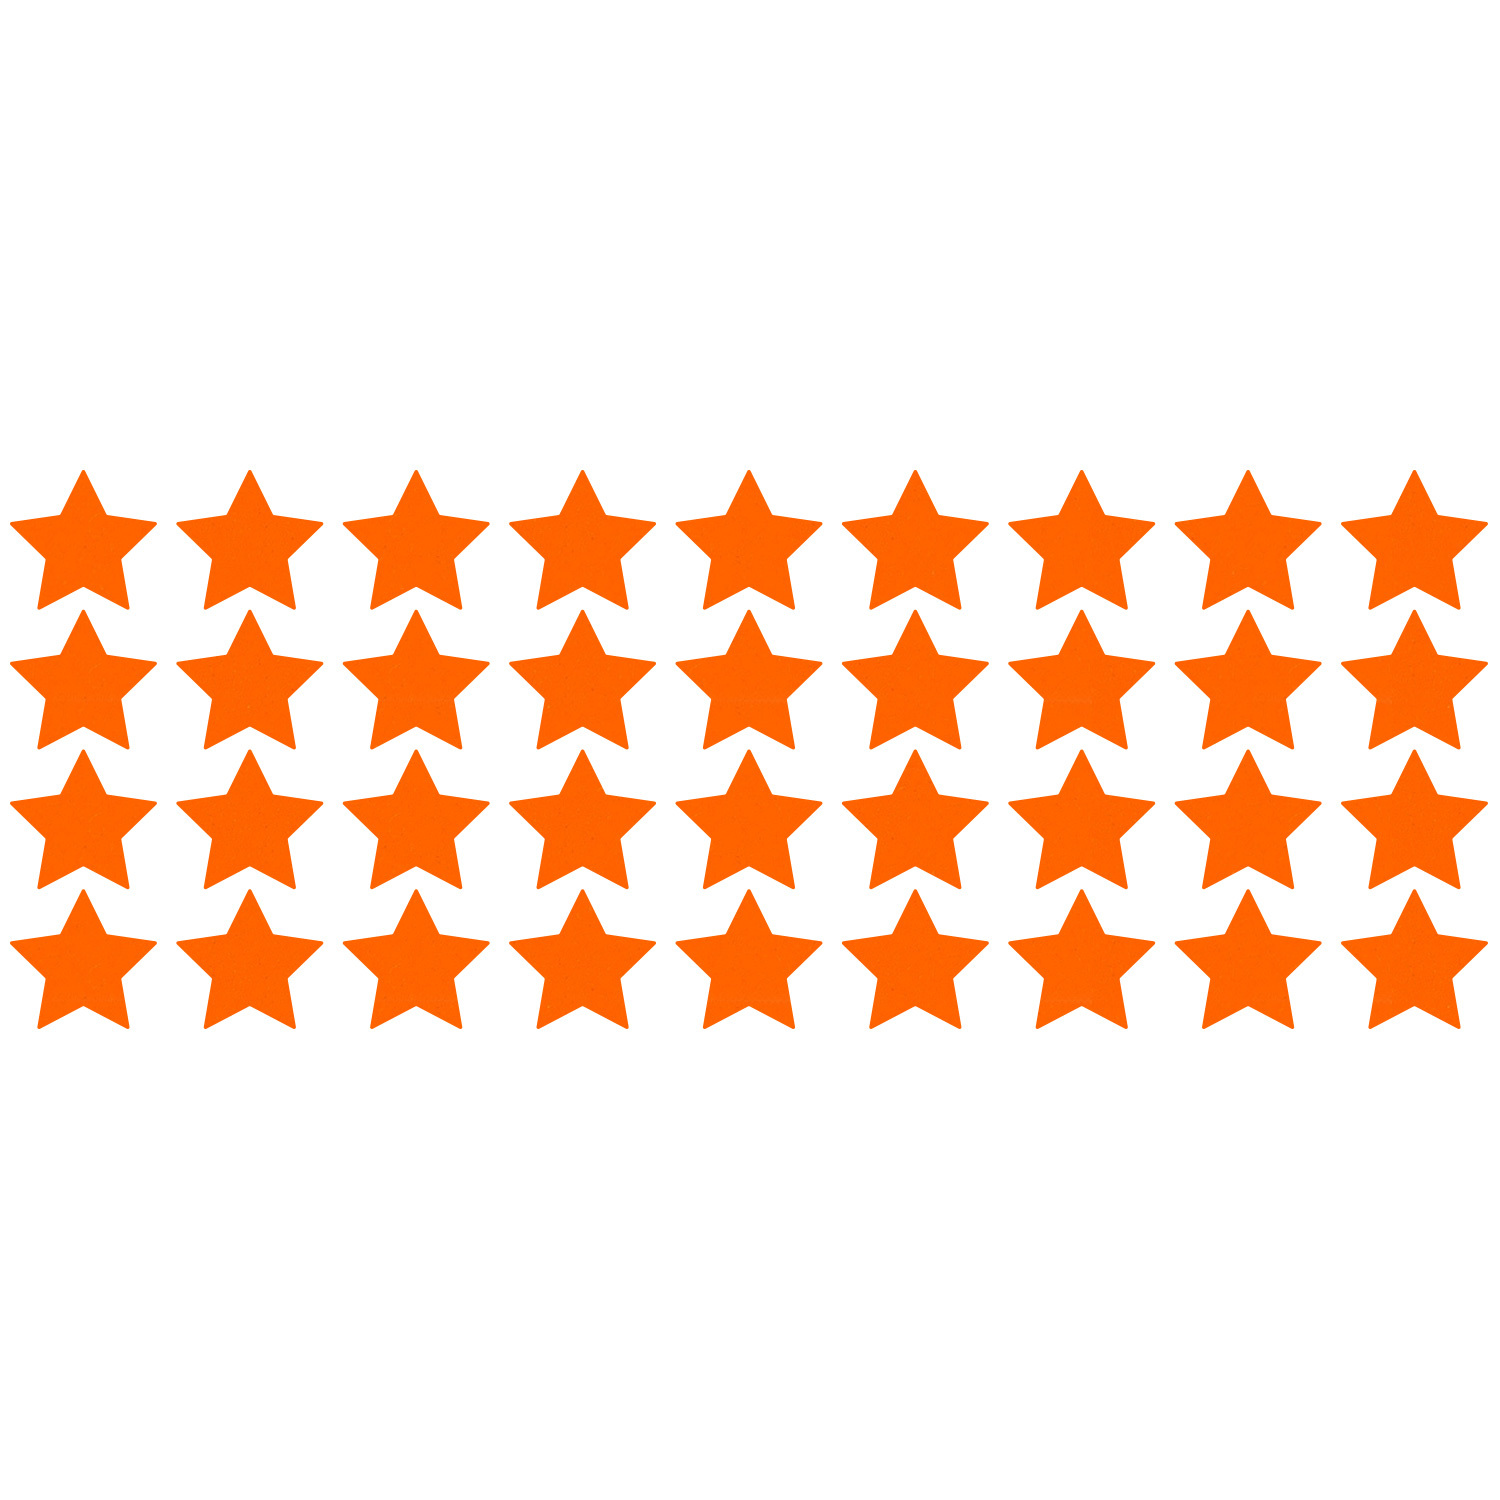 Primary image for LiteMark Reflective Orange 1 Inch Stars Decals - Pack of 36